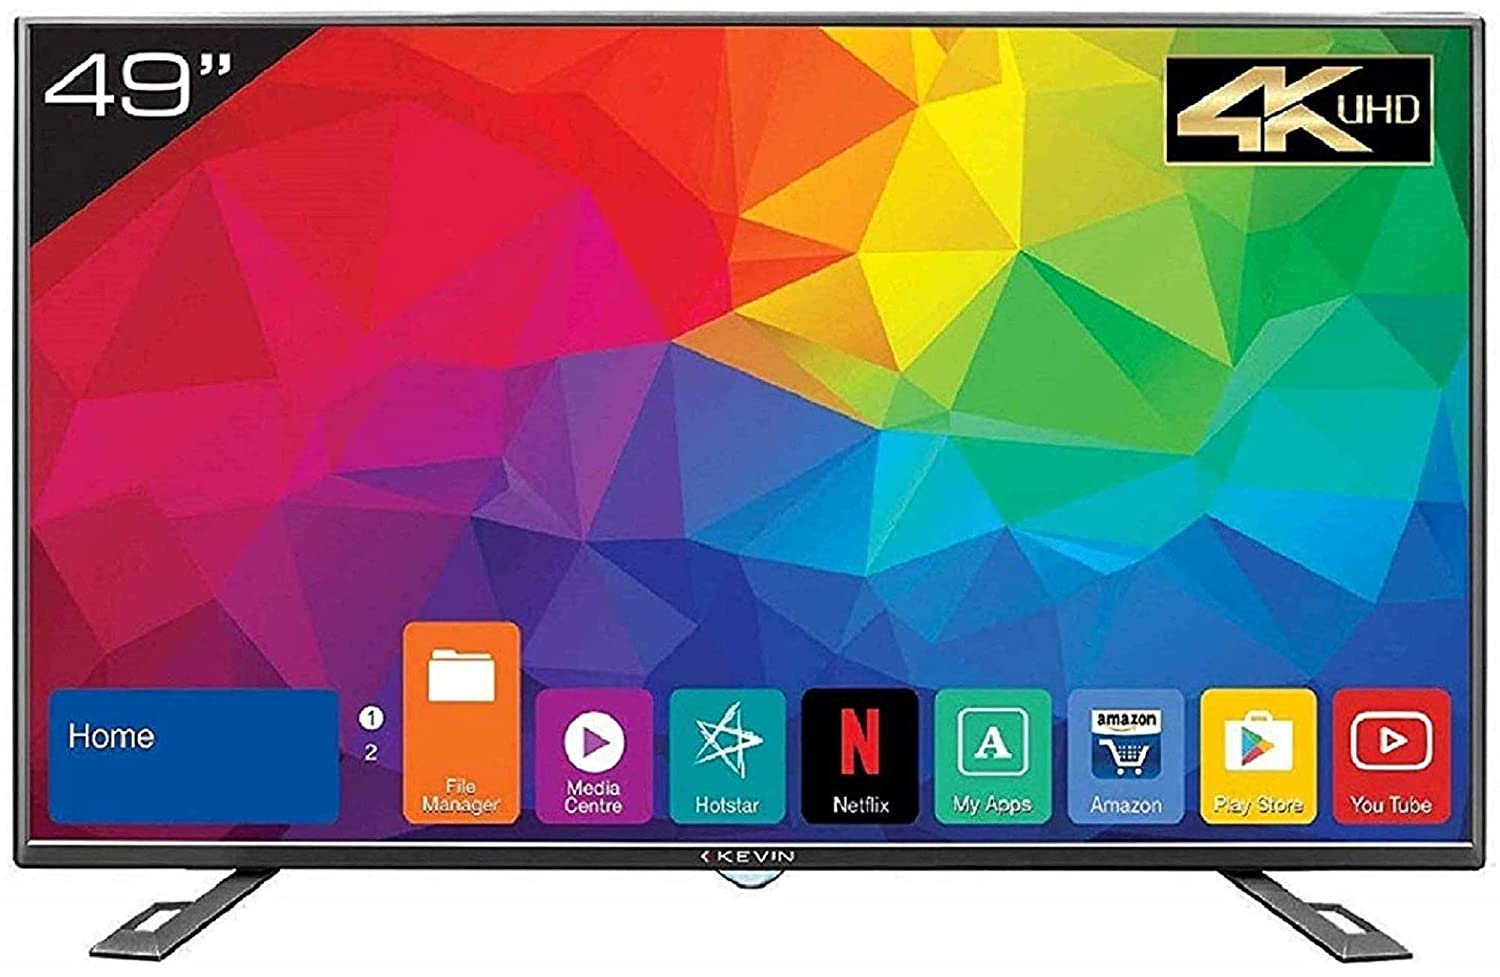 4K UHD Kevin (49 Inches) LED Smart TV KN49UHD